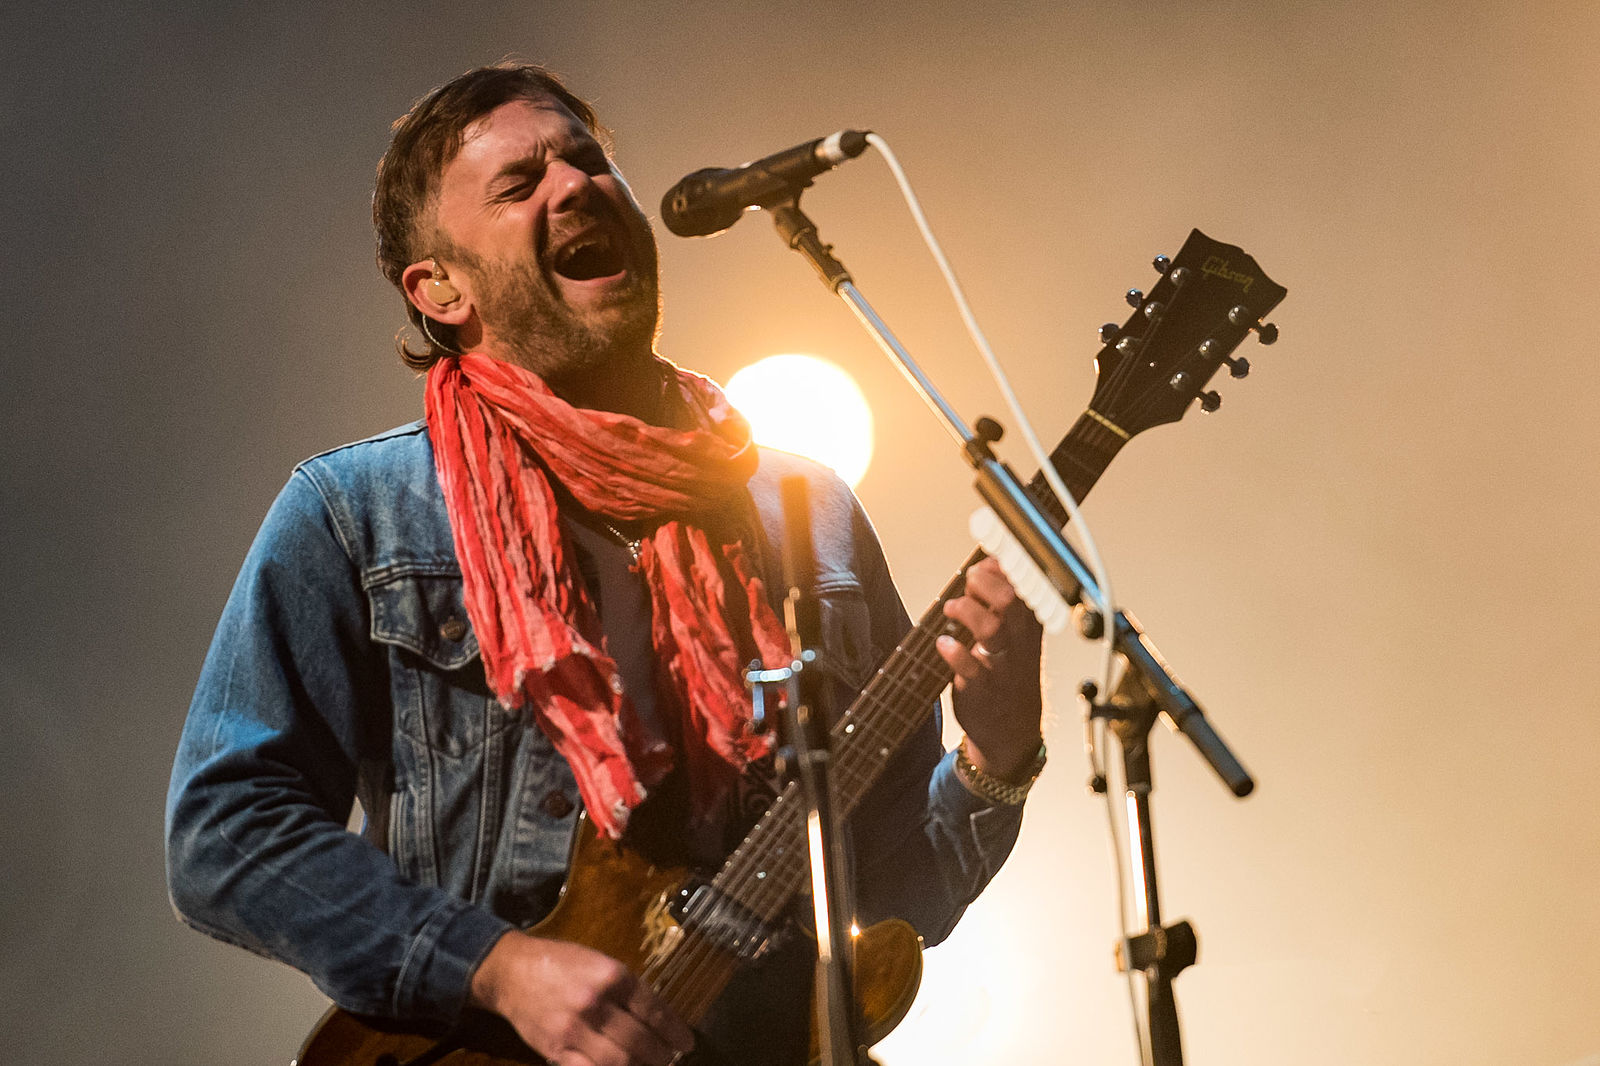 KINGS OF LEON CLOSING FIRST DAY OF LEEDS FESTIVAL 2018 - 24.08.2018  PICTURE BY: CAITLIN MOGRIDE